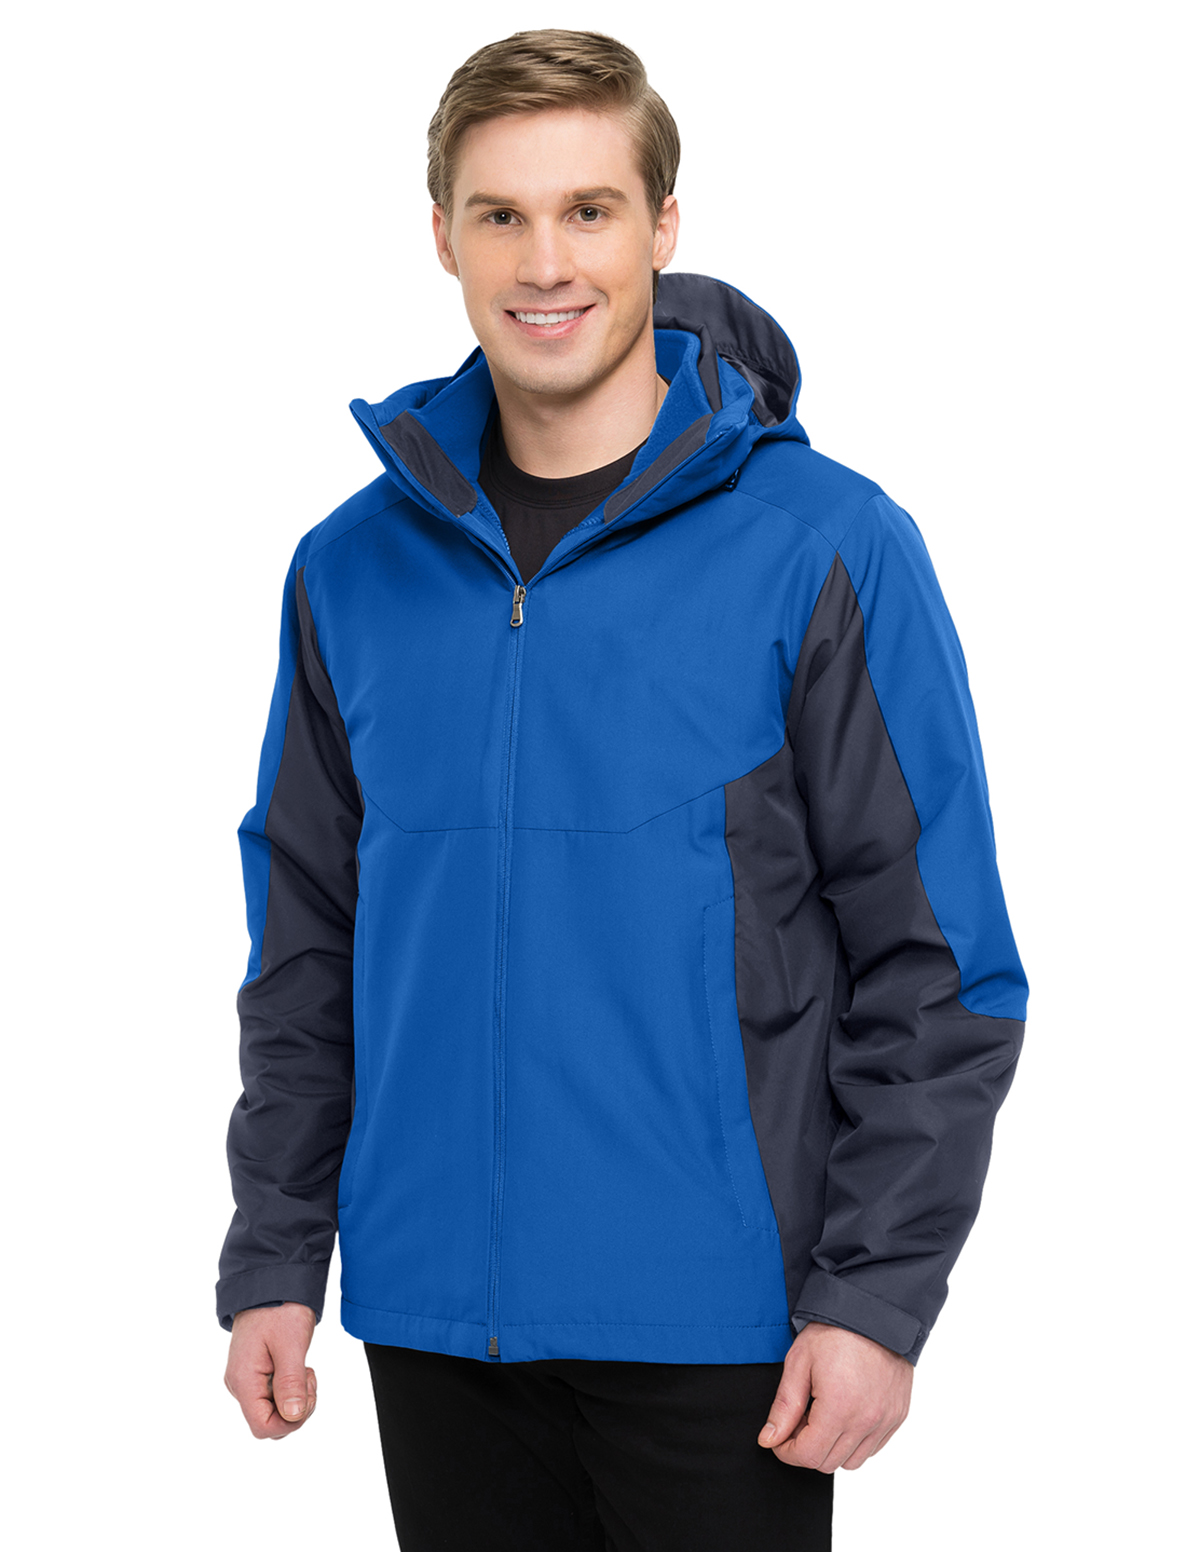 Tri-Mountain J8890 - Bellingham Men's 3-in-1 System Jacket